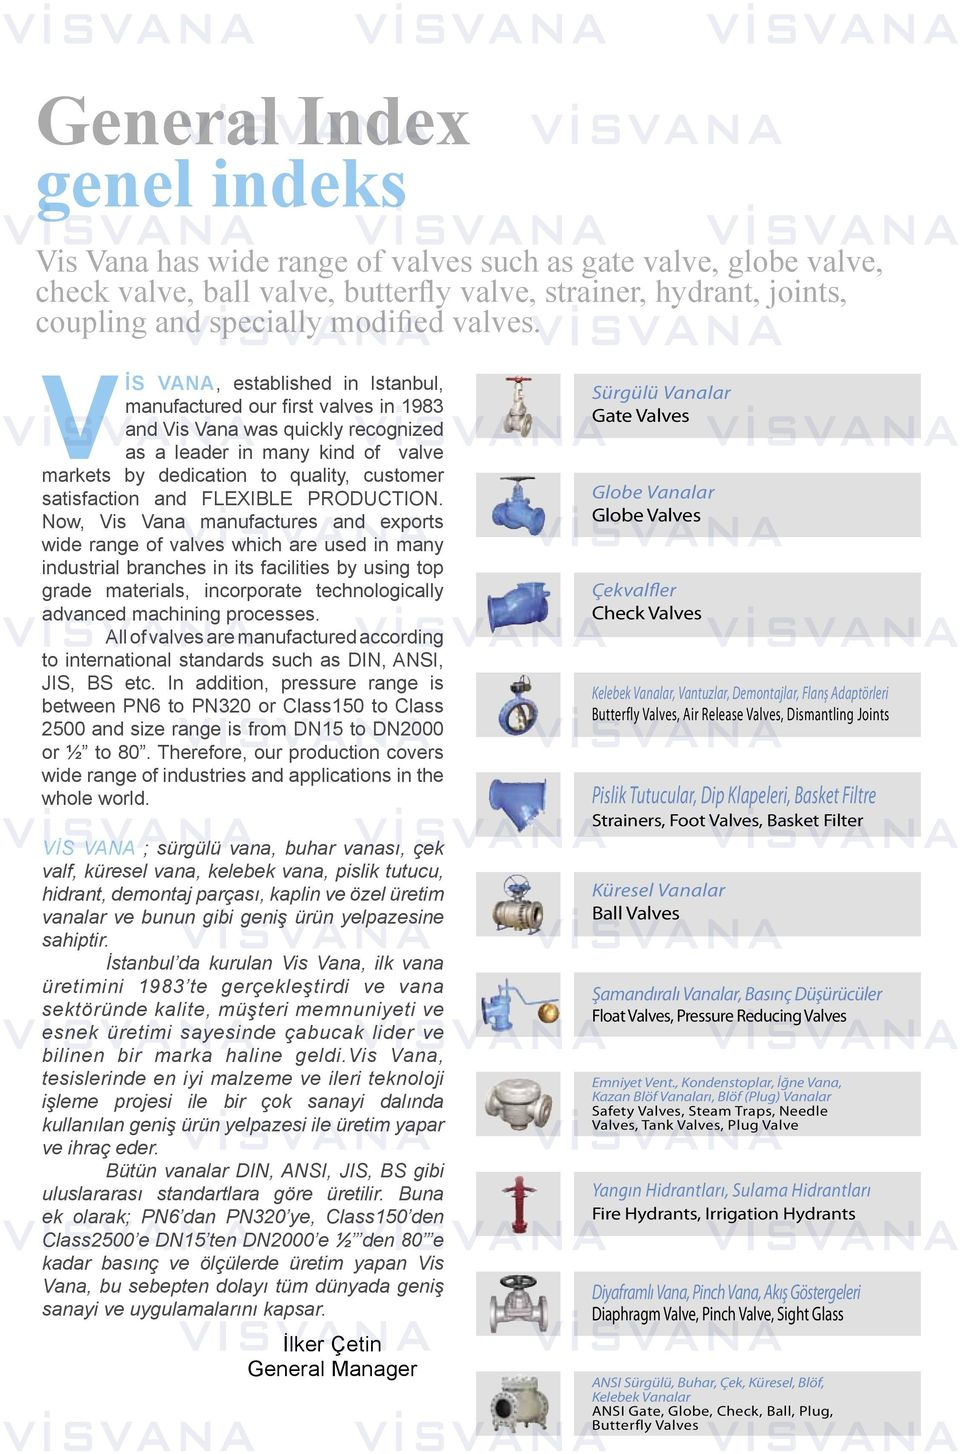 VİS VANA, established in Istanbul, manufactured our first valves in 9 and Vis Vana was quickly recognized as a leader in many kind of valve markets by dedication to quality, customer satisfaction and